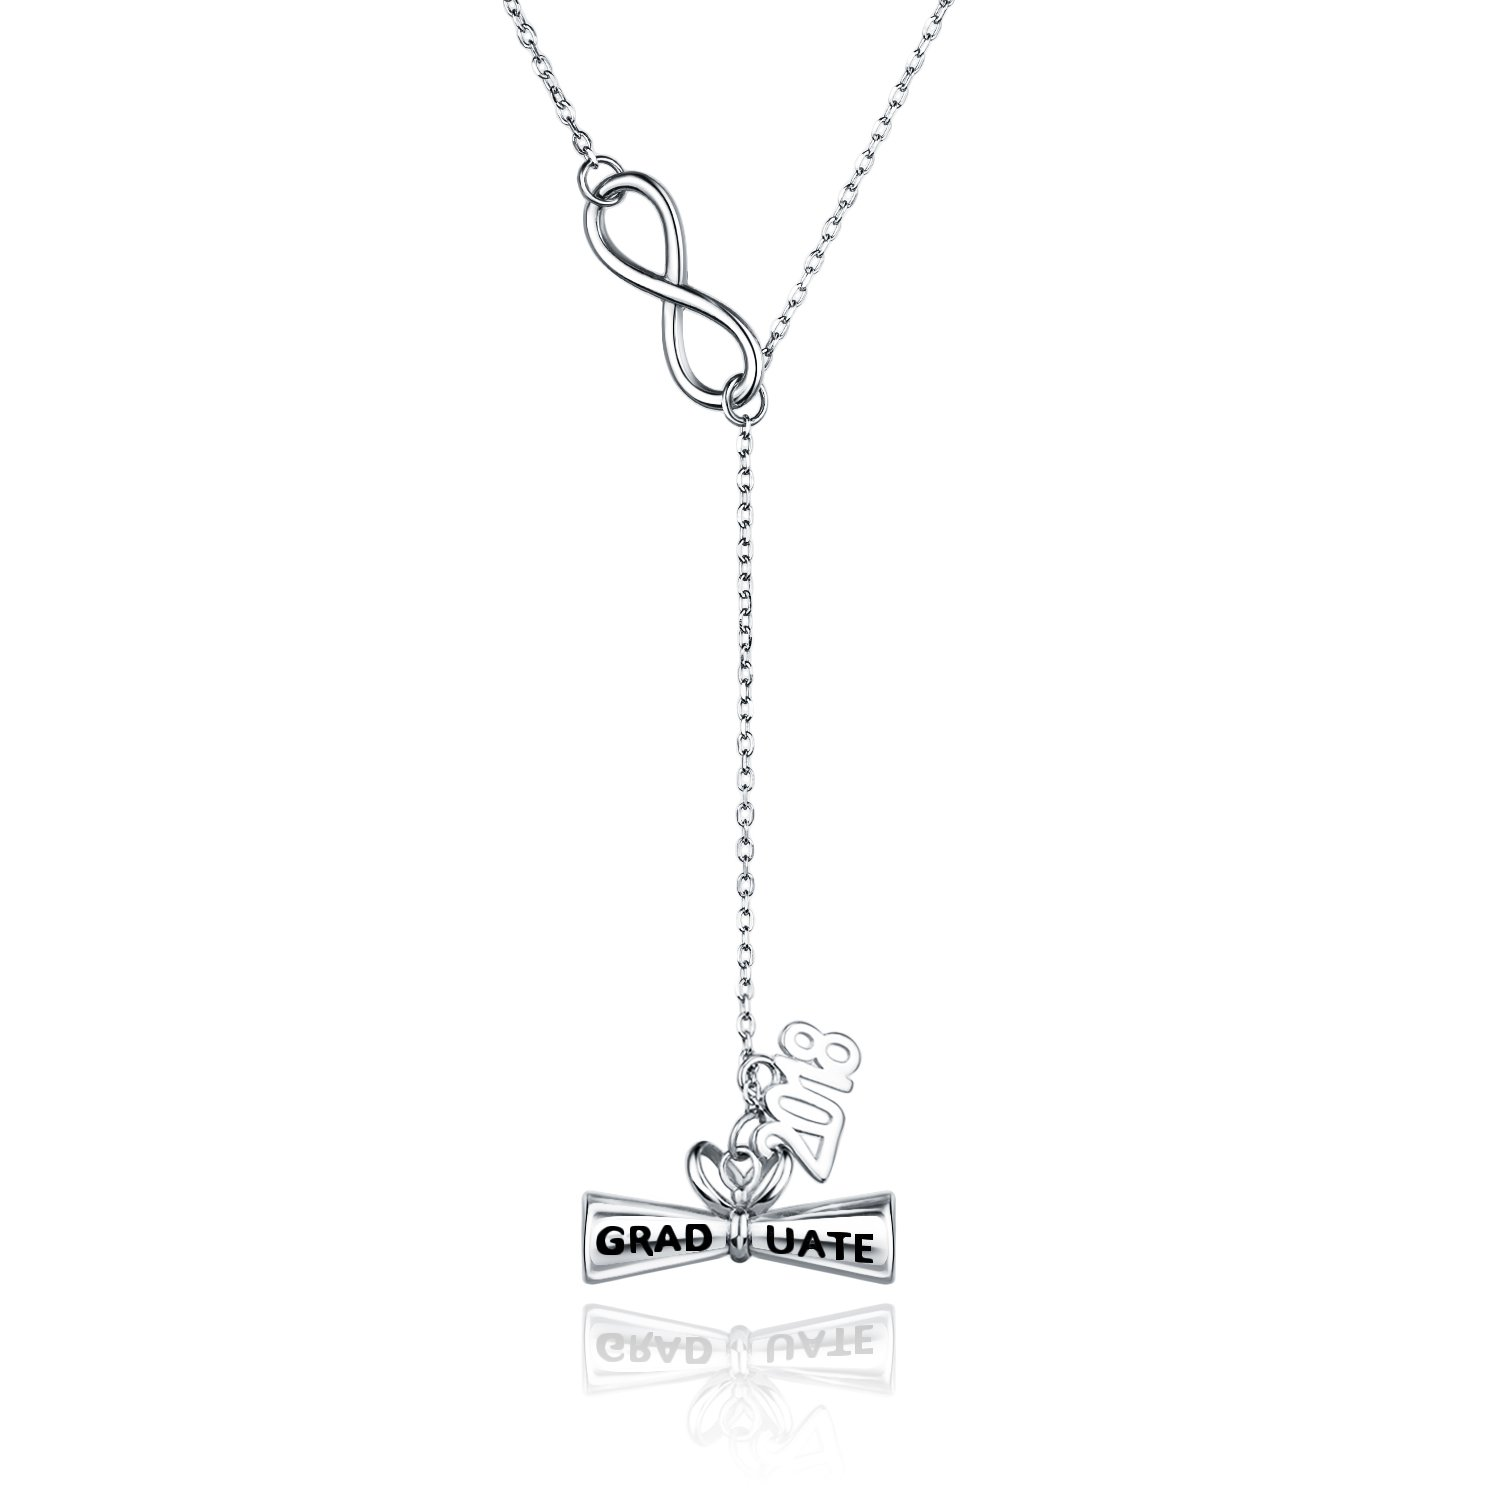 Billie Bijoux 925 Sterling Silver 2018 Engraved Graduate Diploma Pendant Y Necklace Graduation Jewelry Gift for Sister Daughter Friends Teens and Other Graduates